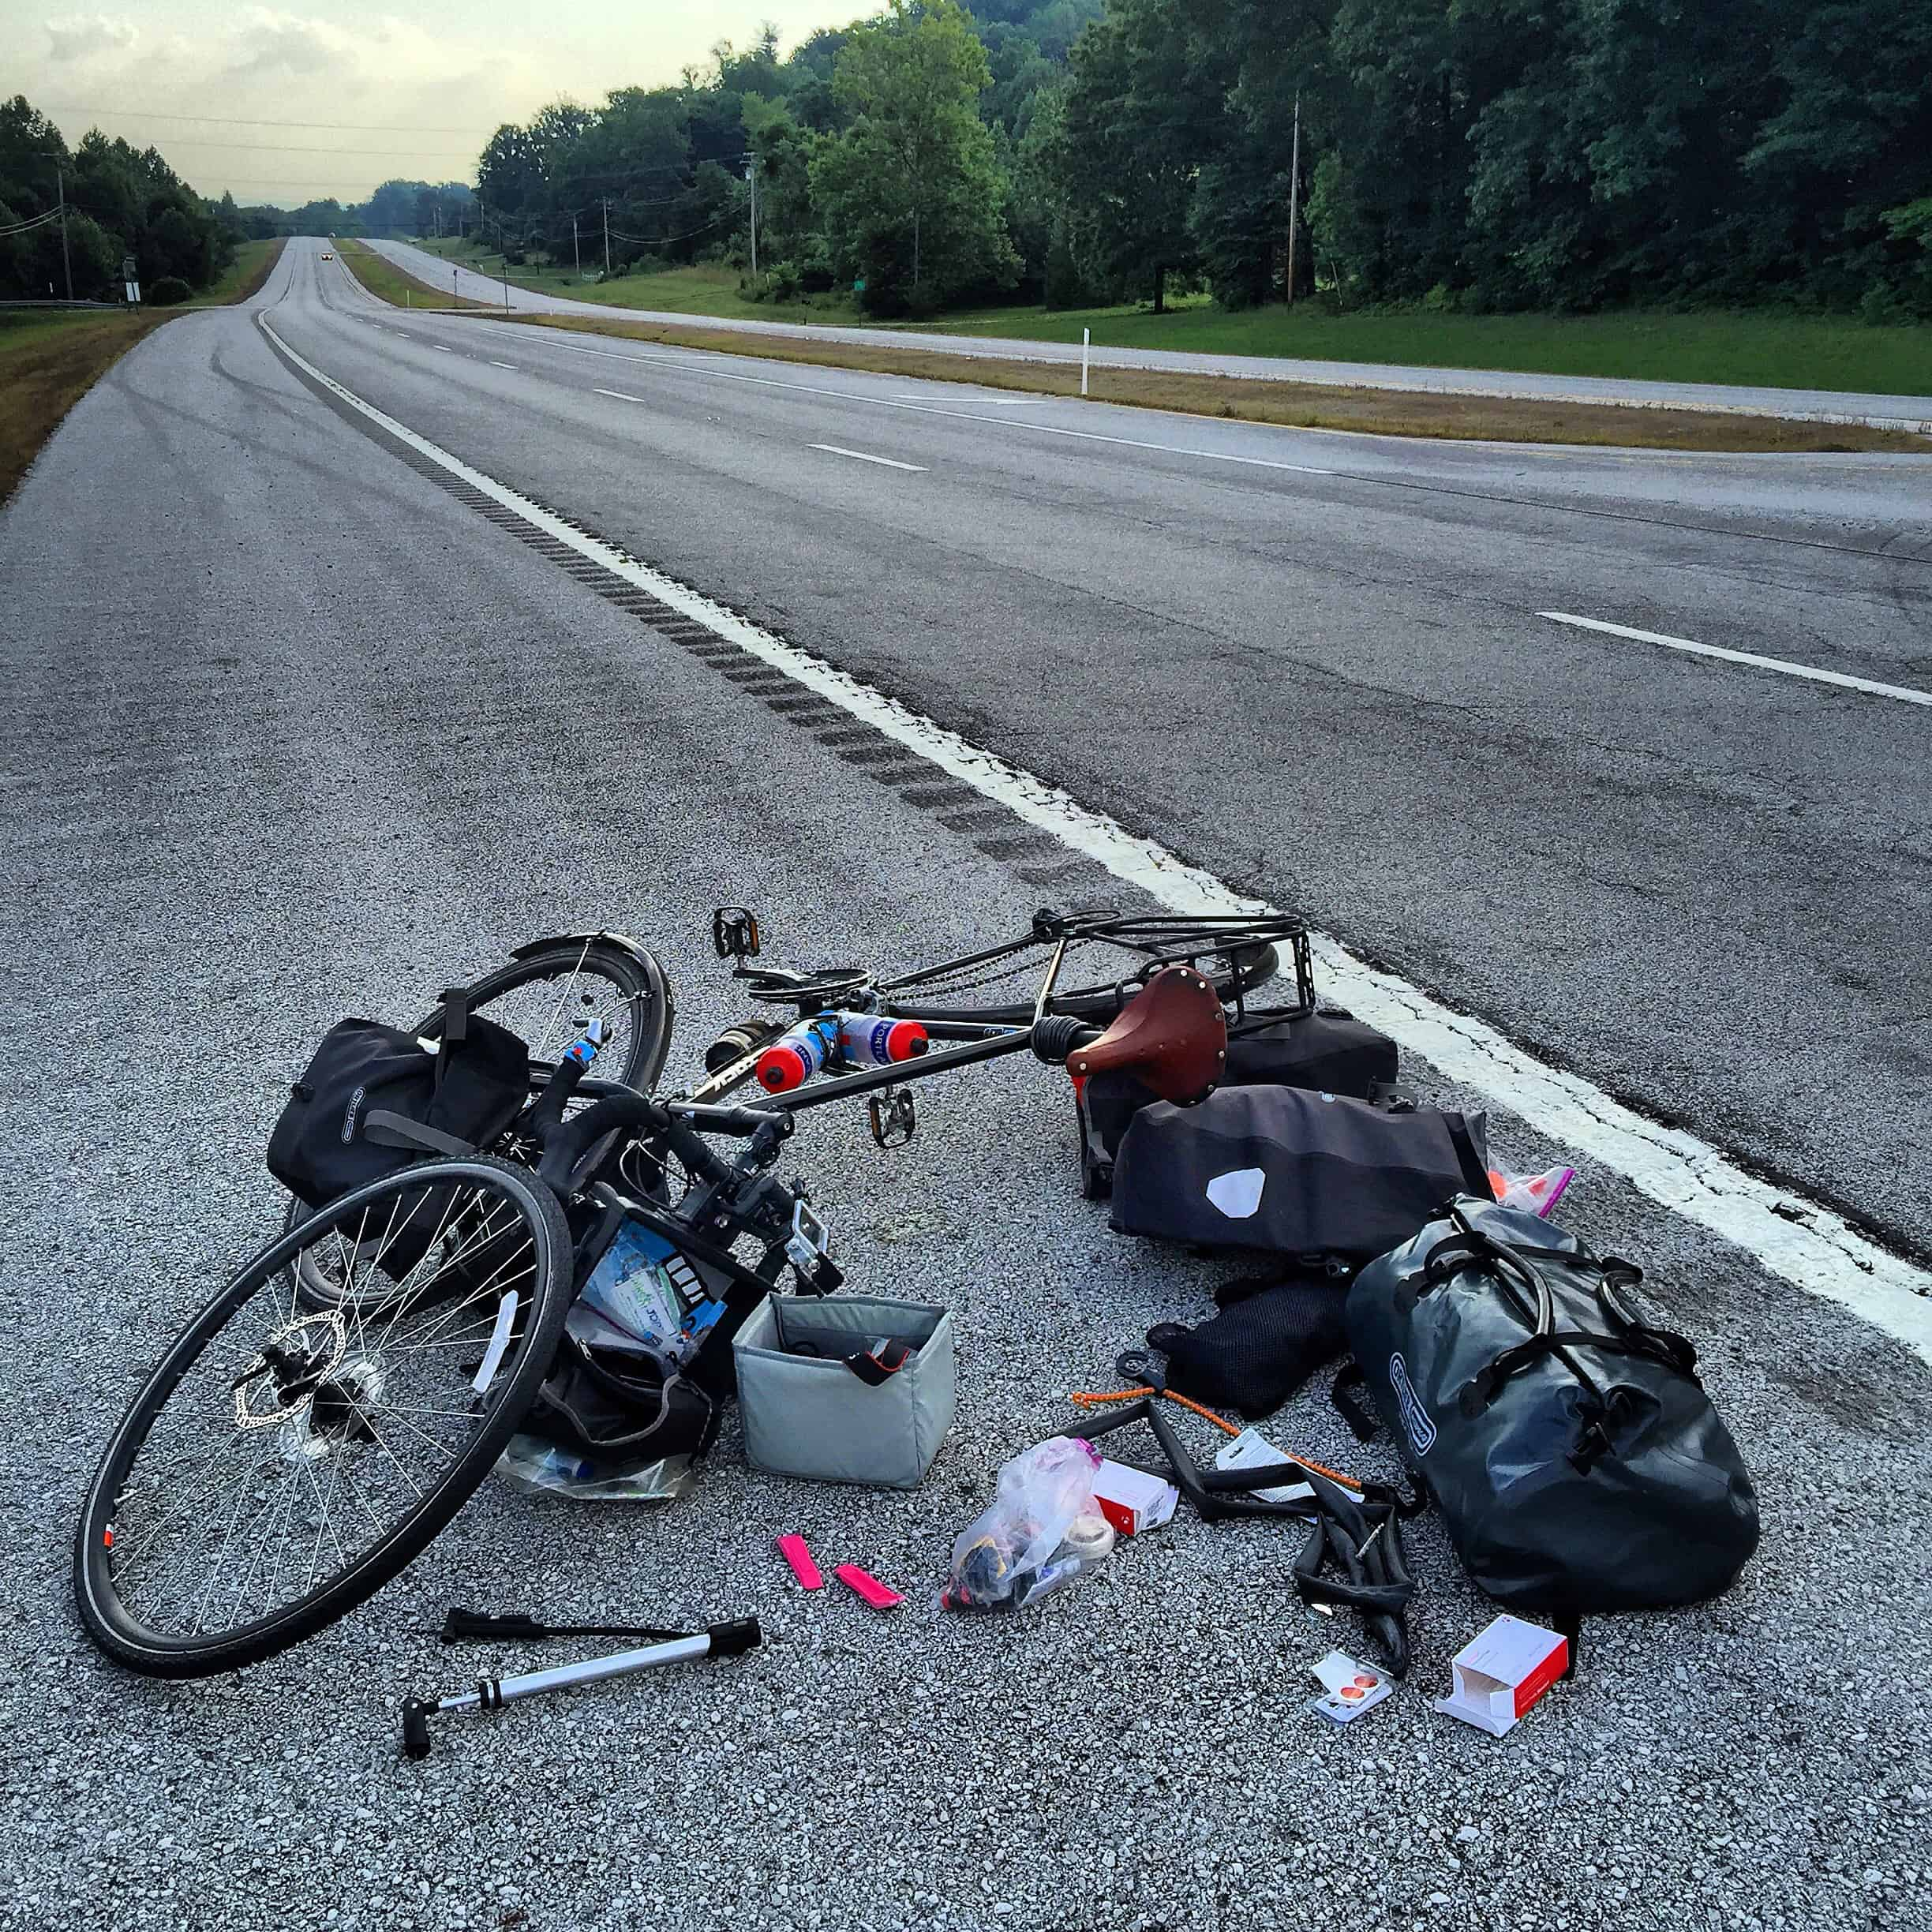 My first flat tire of my bike trip this summer. It was in Tennessee around mile 760 after I had ridden 7 miles in the completely wrong direction. Looks like a yard sale.